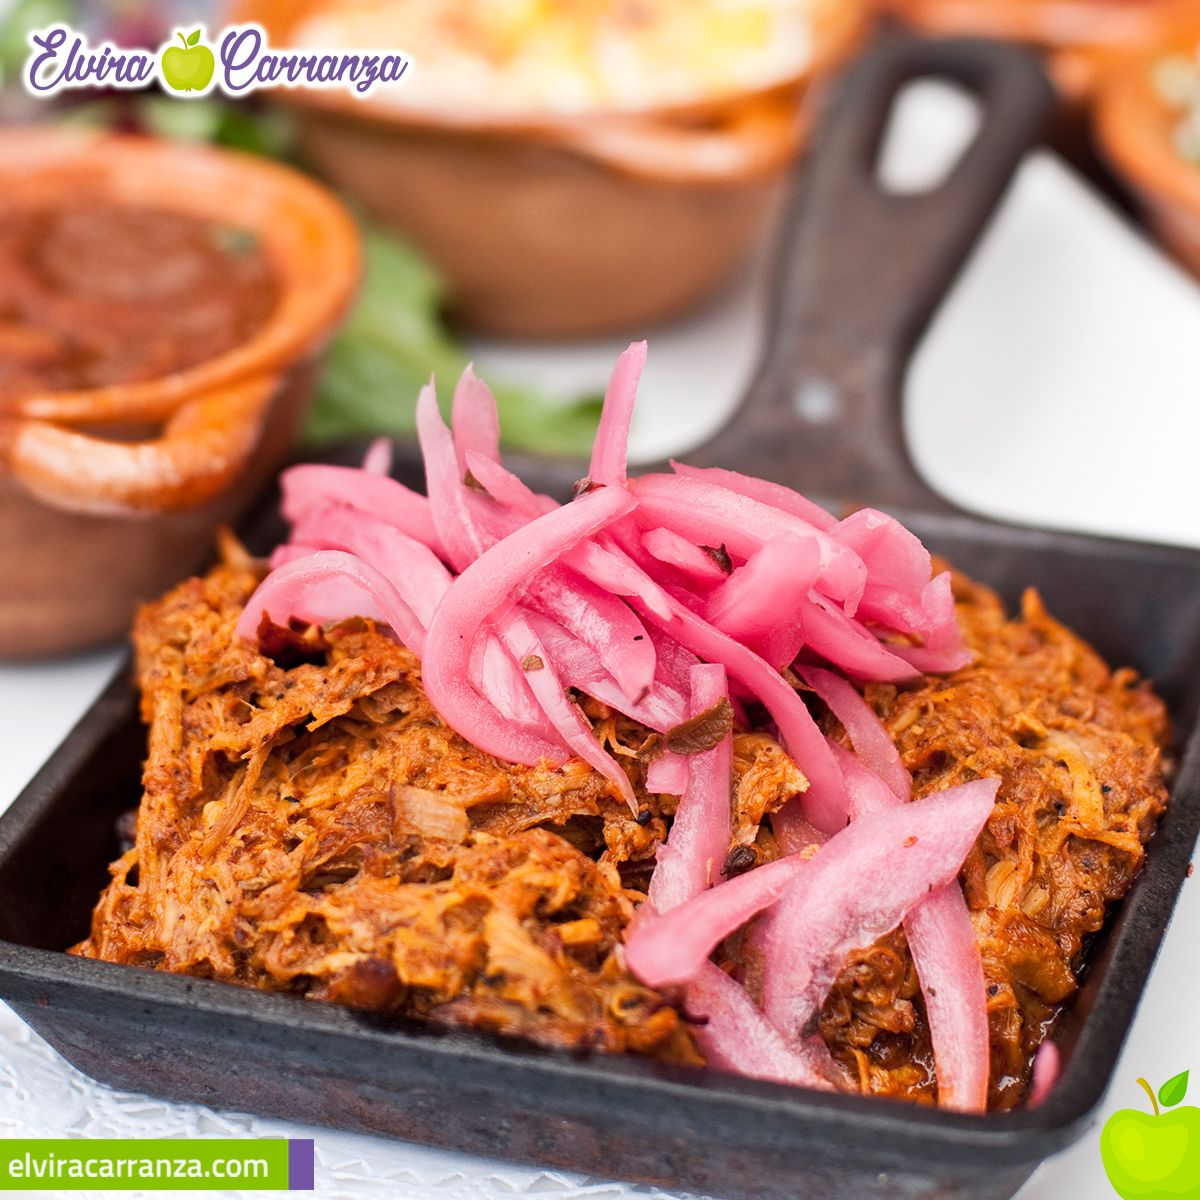 Pibil style pork this recipe you will love enjoy the flavors of elvira troyo carranza from the book modern authentic mexican cooking the art of good eating and the carranza method forumfinder Image collections